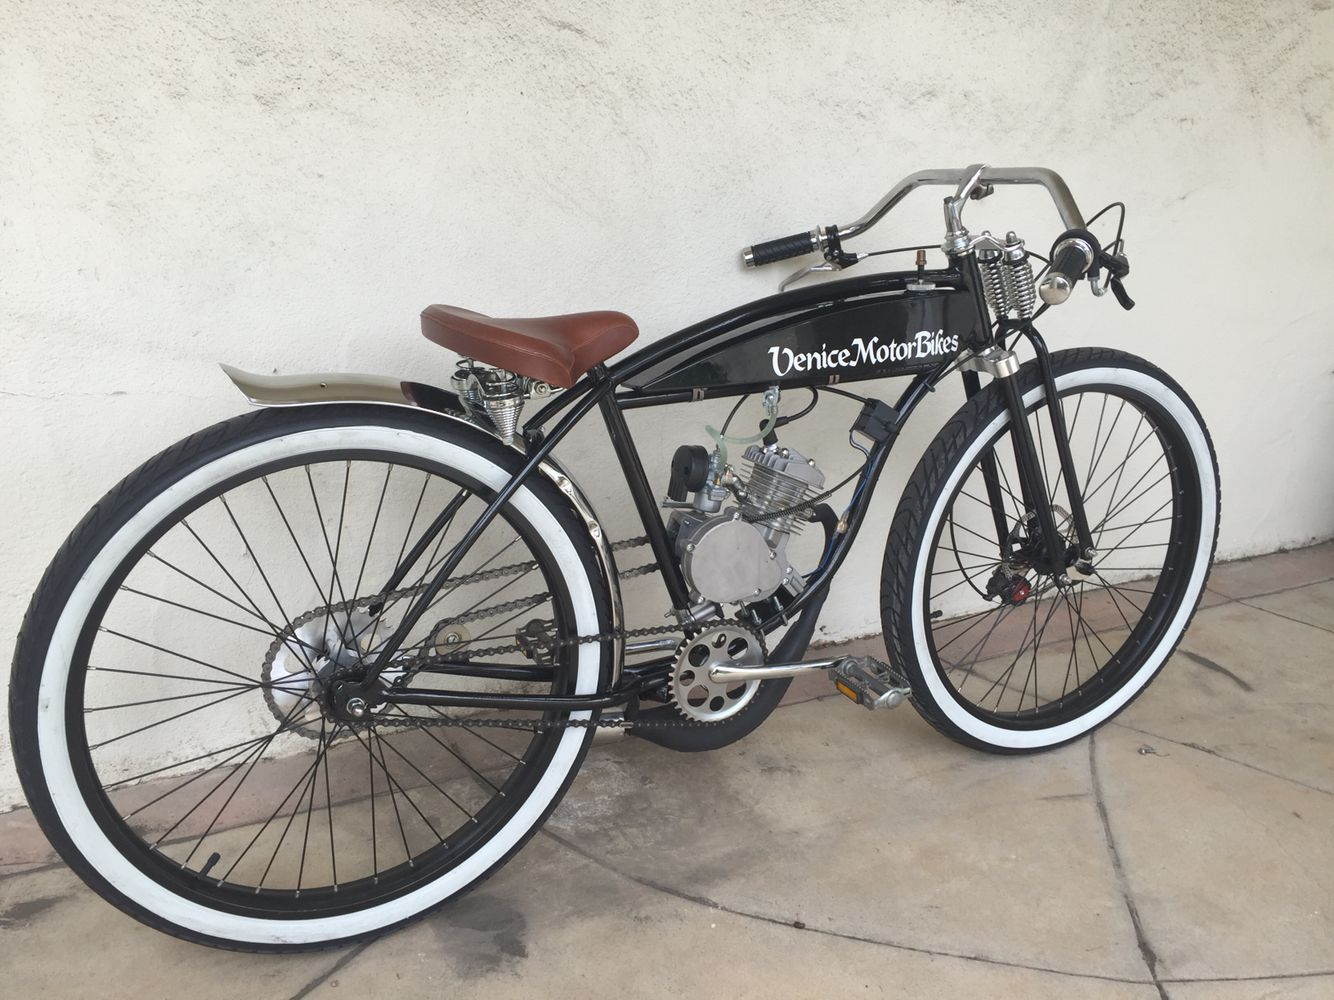 1937 Columbia With Custom Tank With Images Bicycle Engine Kit